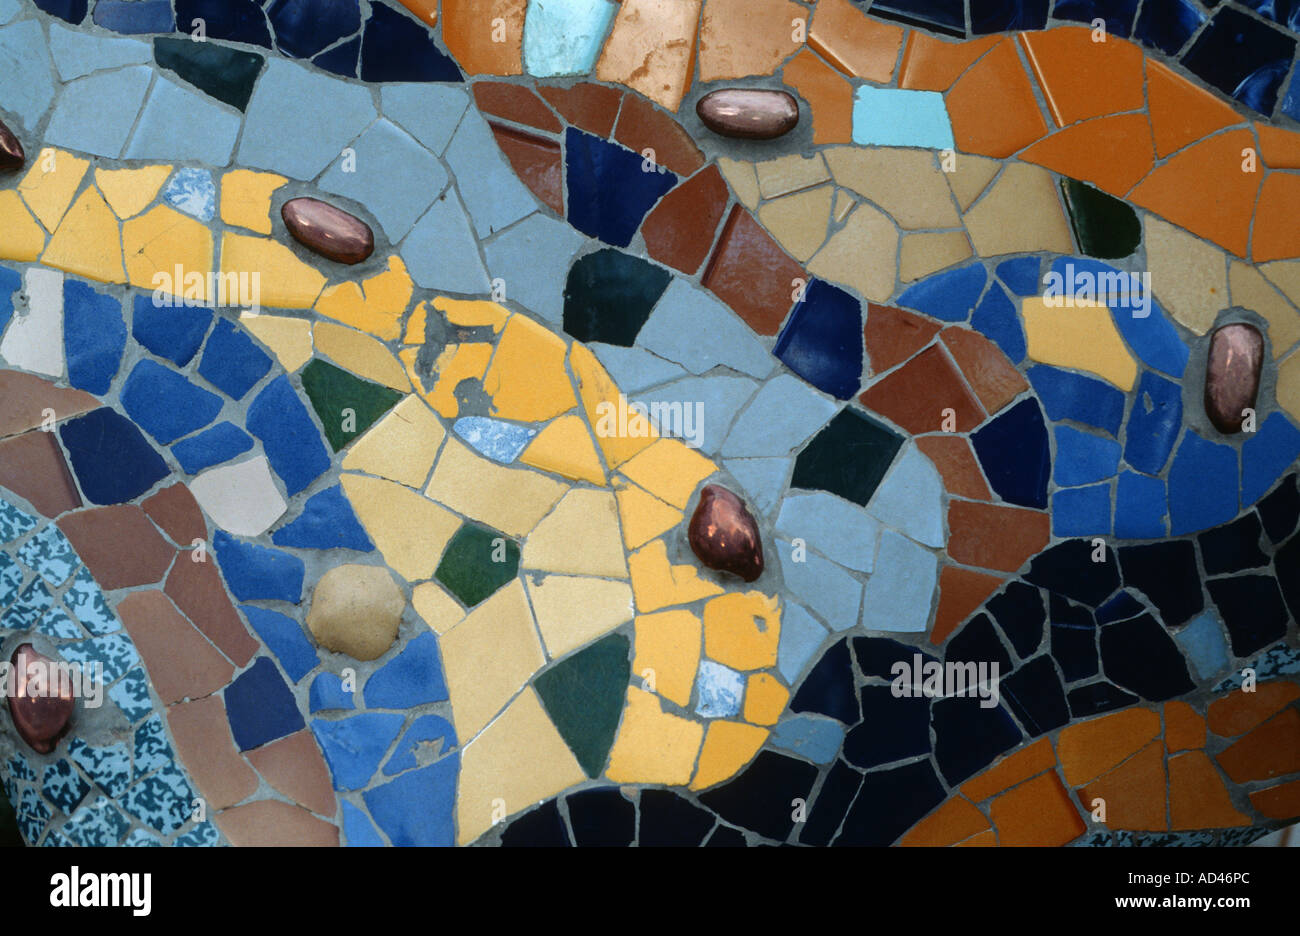 guell park mosaic detail dragon gaudi architecture - Stock Image